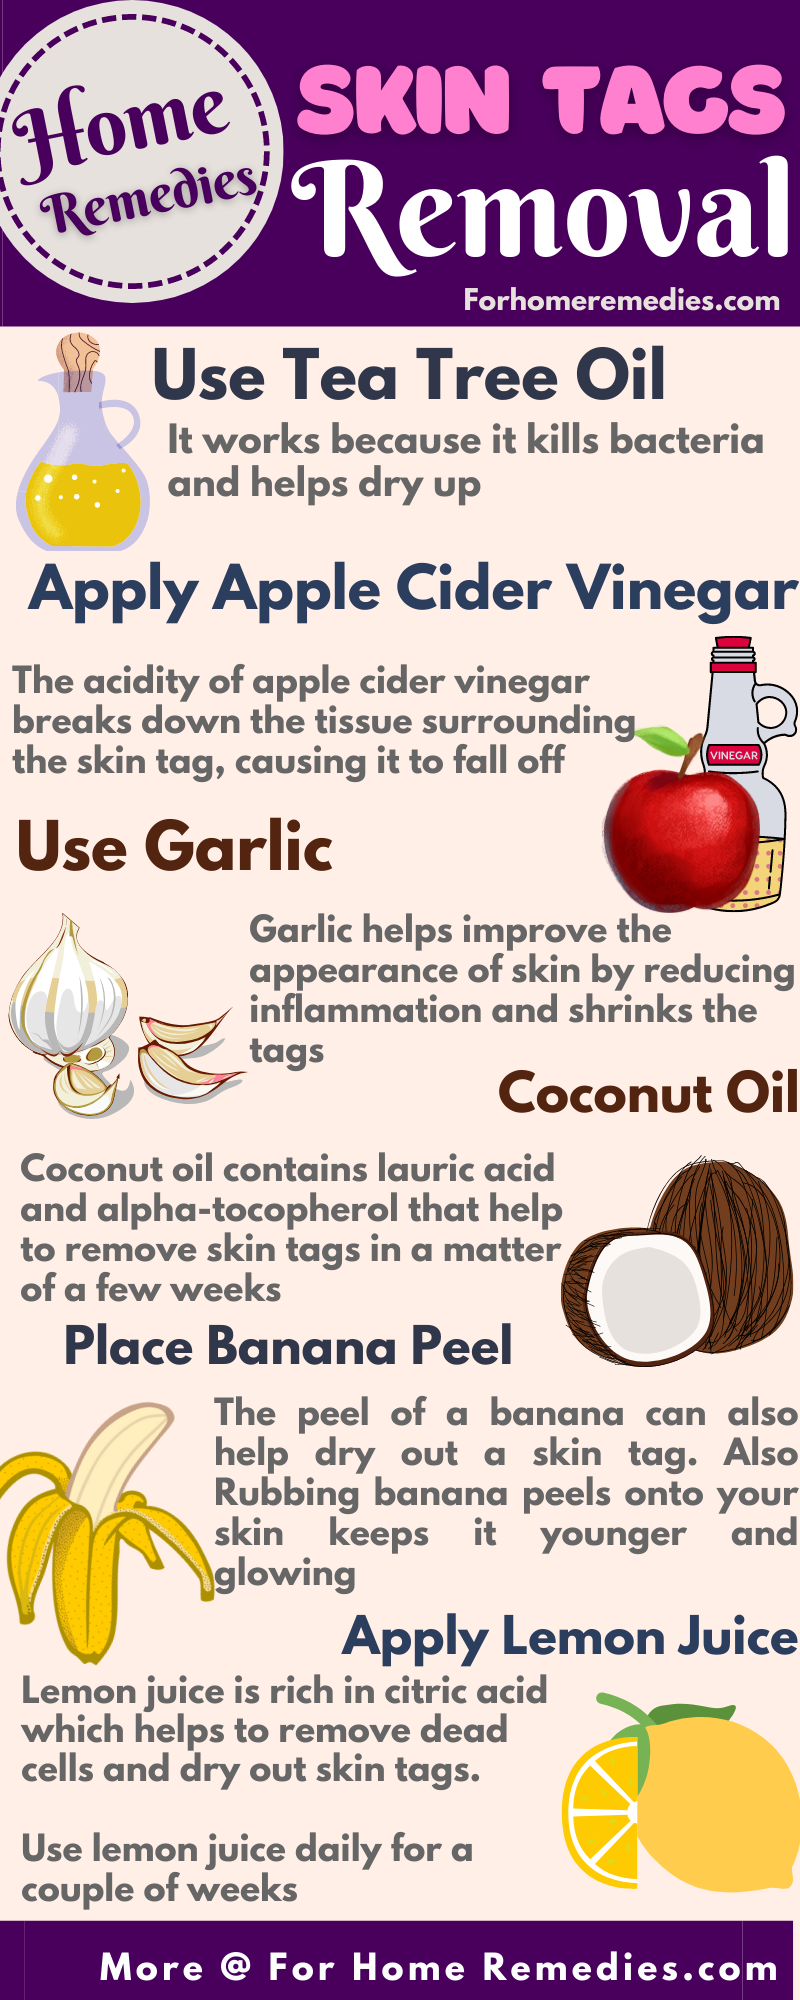 Home Remedies for Skin Tags Removal - Oils and Acv to get rid of skin tags